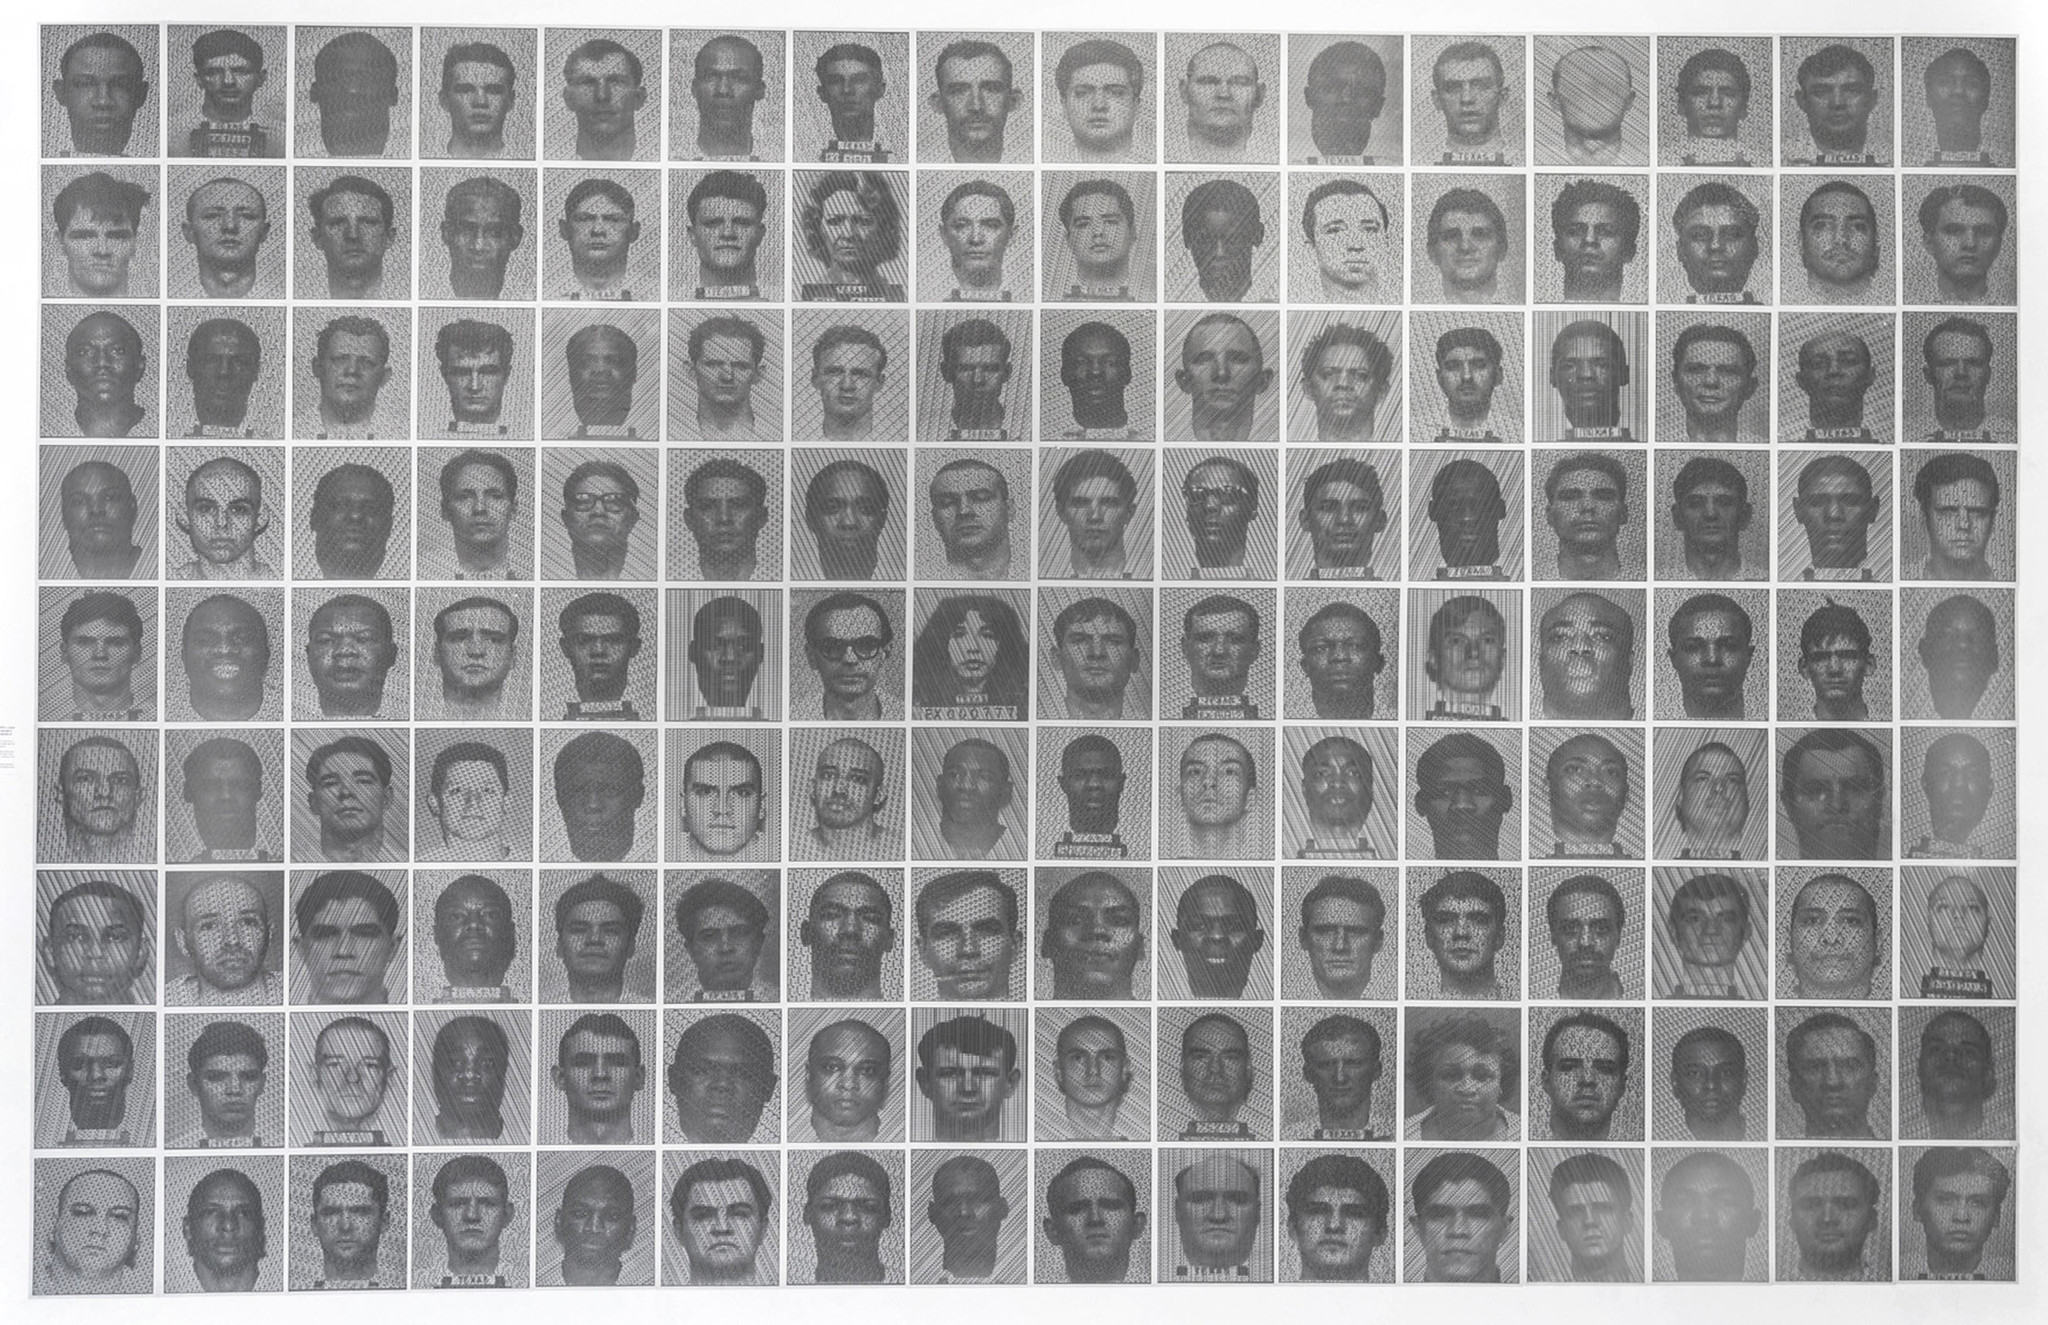 Amy Elkins began her project on the death penalty in 2009 by corresponding with death row inmates. In 2015 she had a visual archive representing 530 executions in Texas.